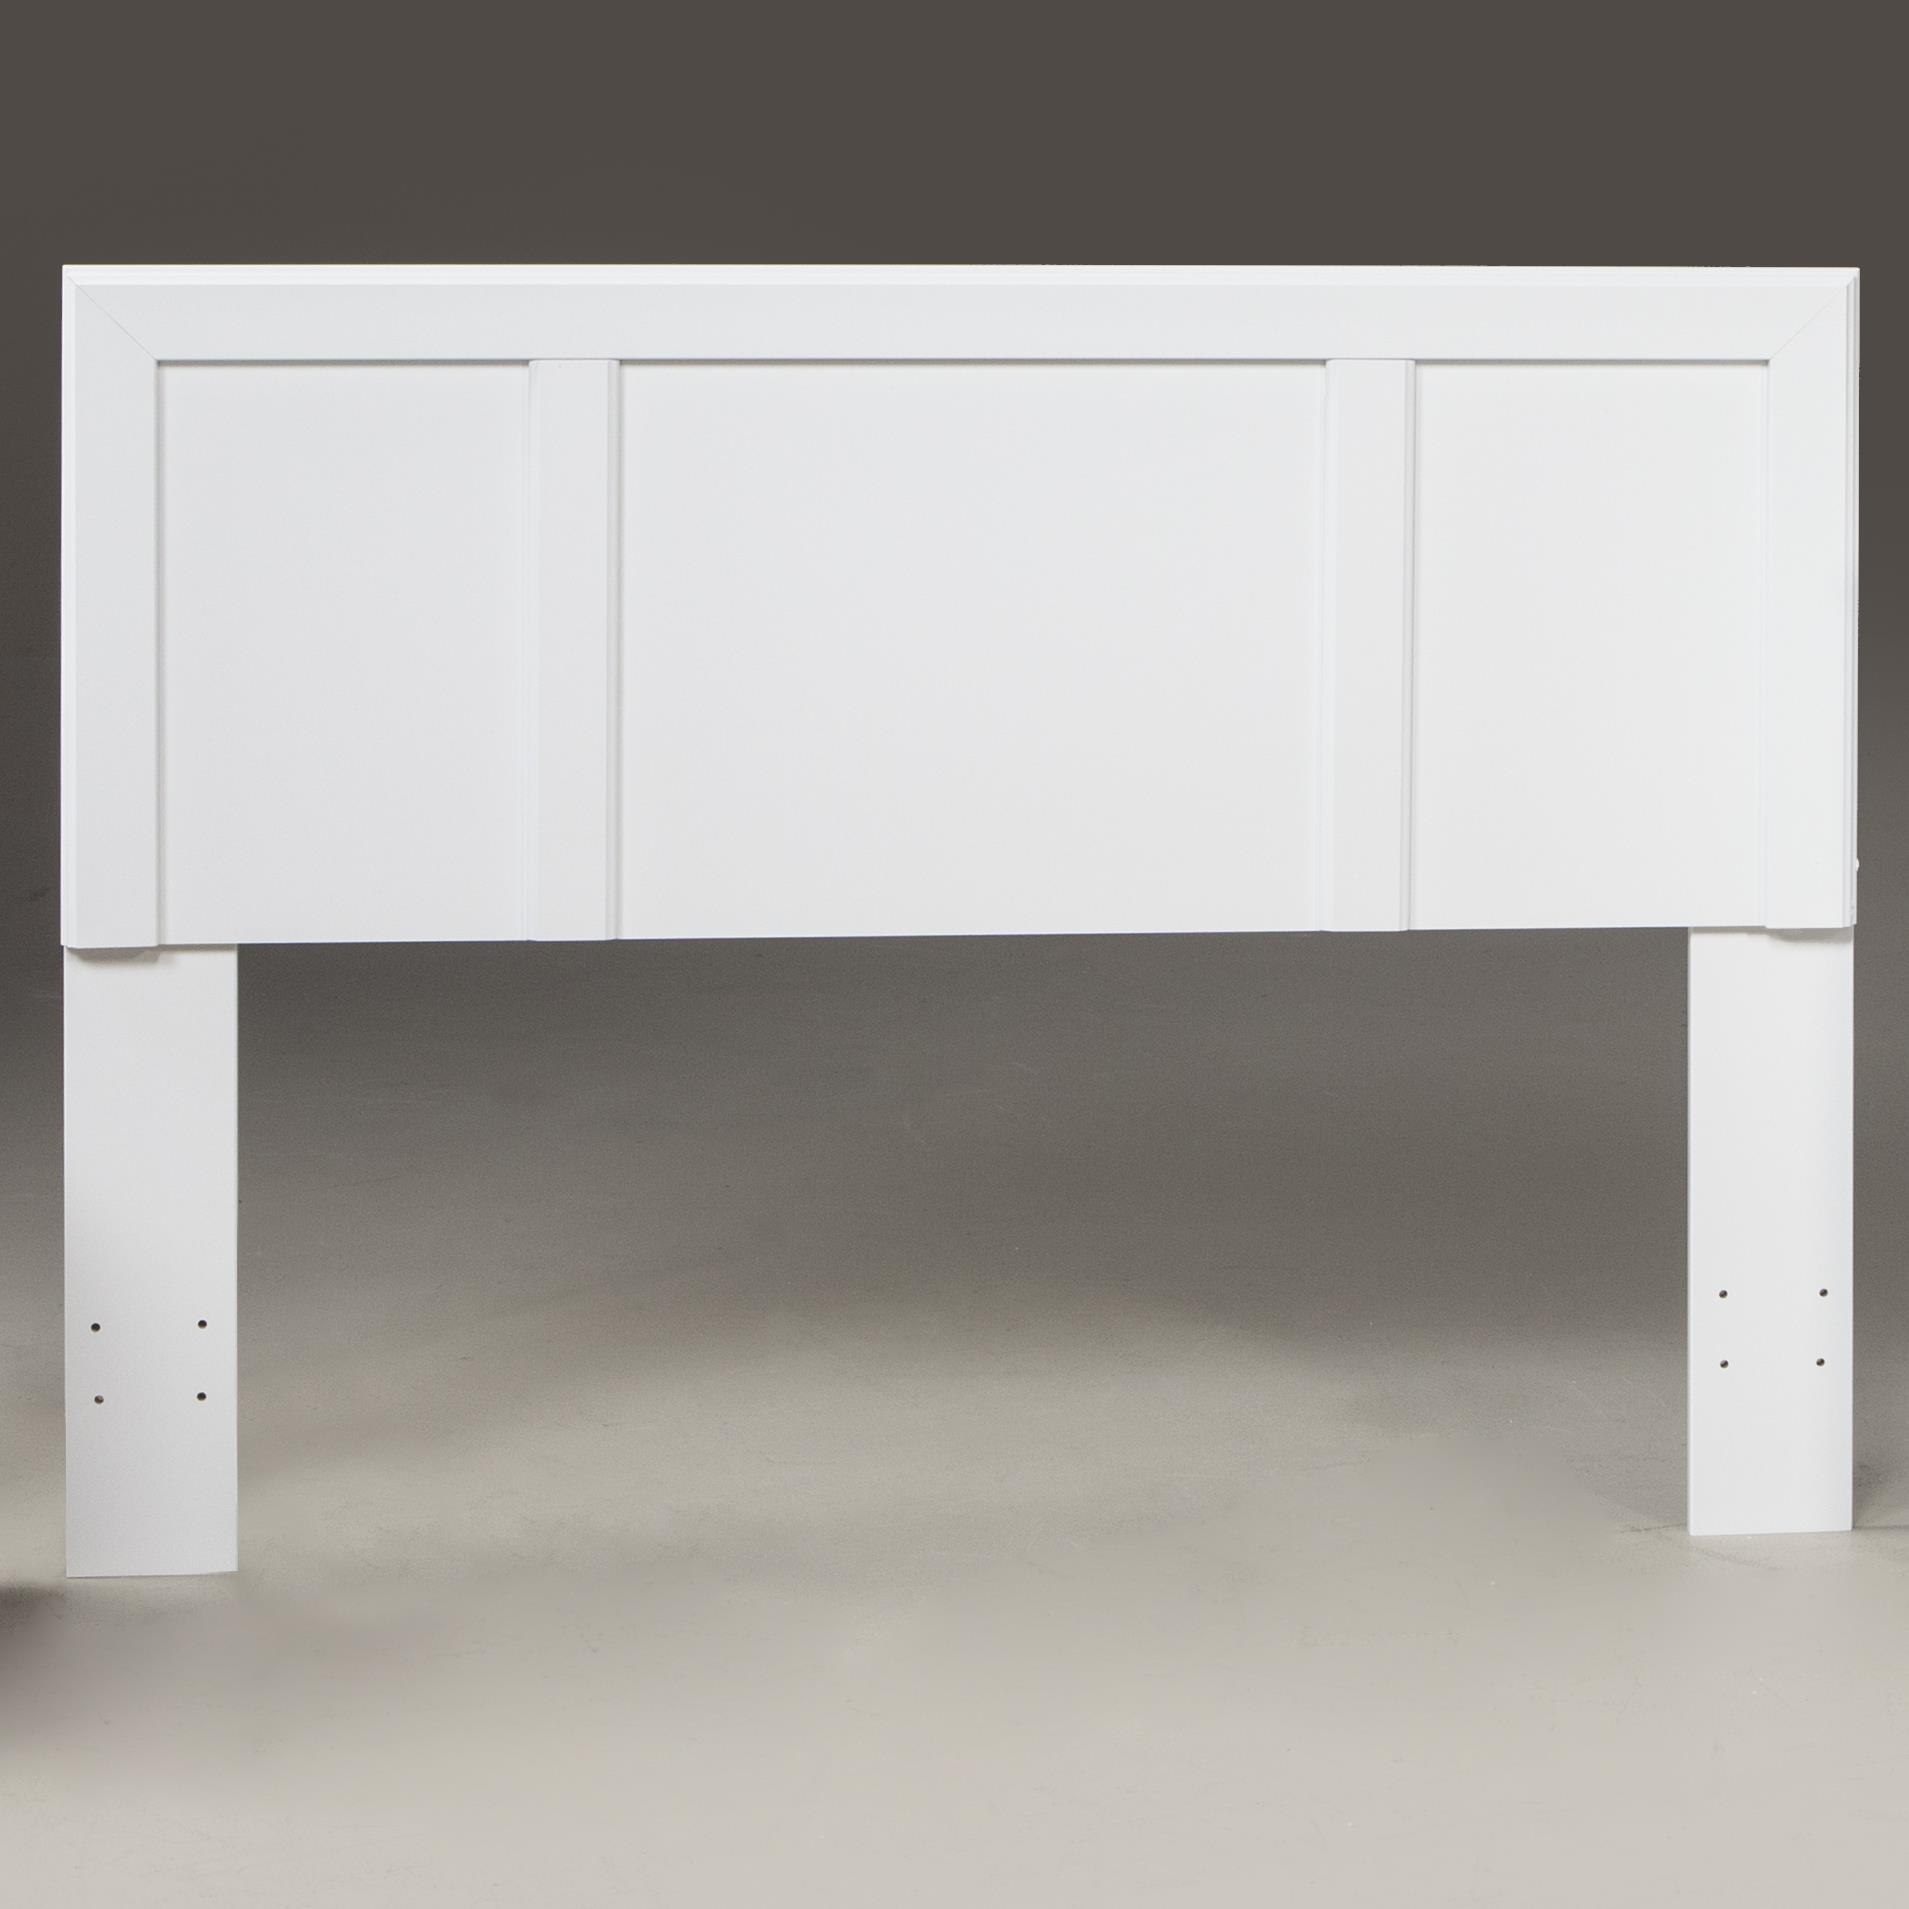 Kith Furniture 193 White Twin Headboard - Item Number: 193-33